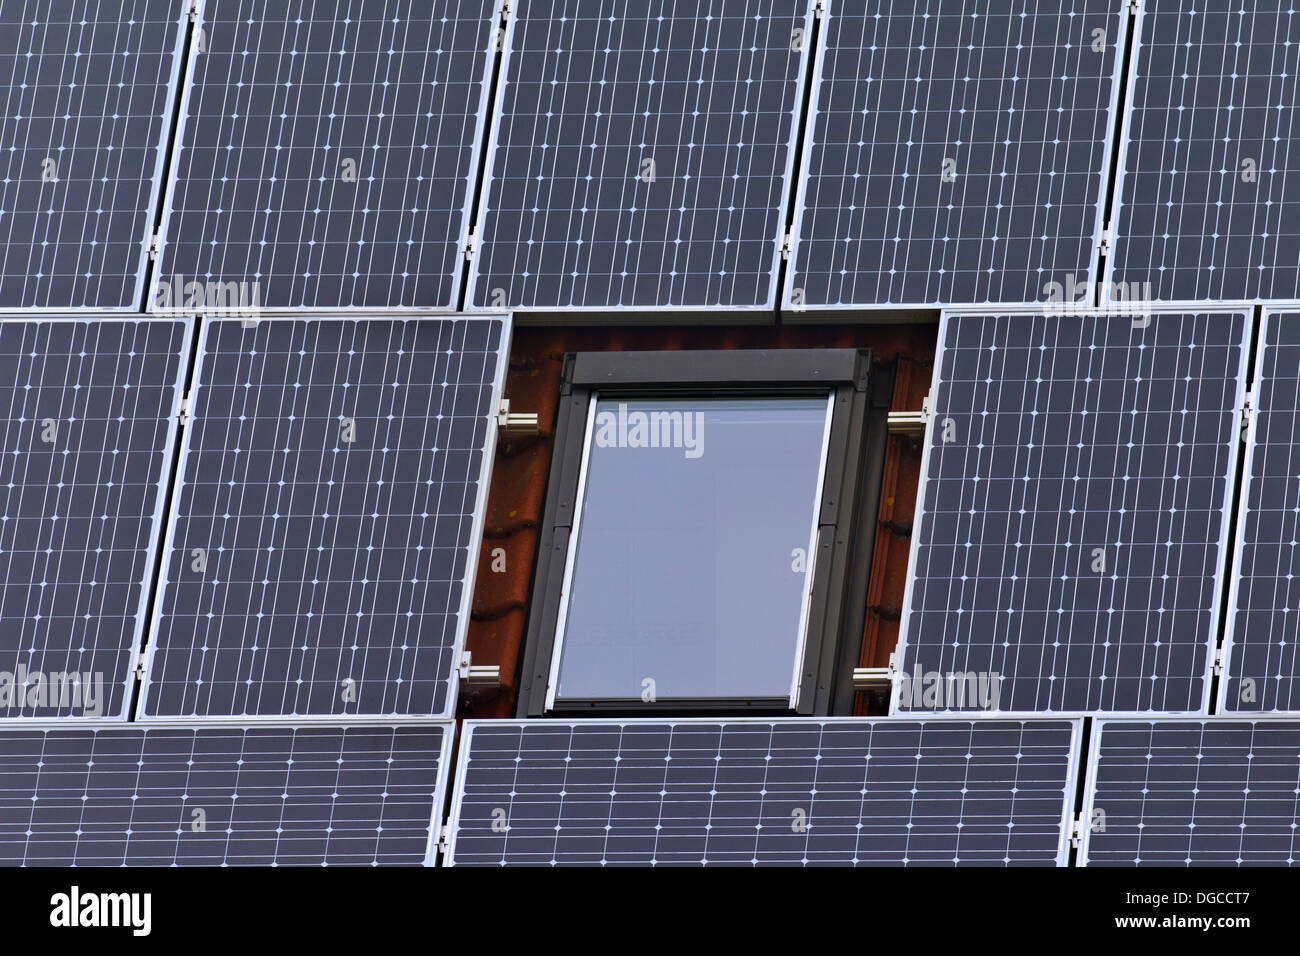 Close-up of photovoltaic solar panels on roof of house for ecological alternative energy - Stock Image